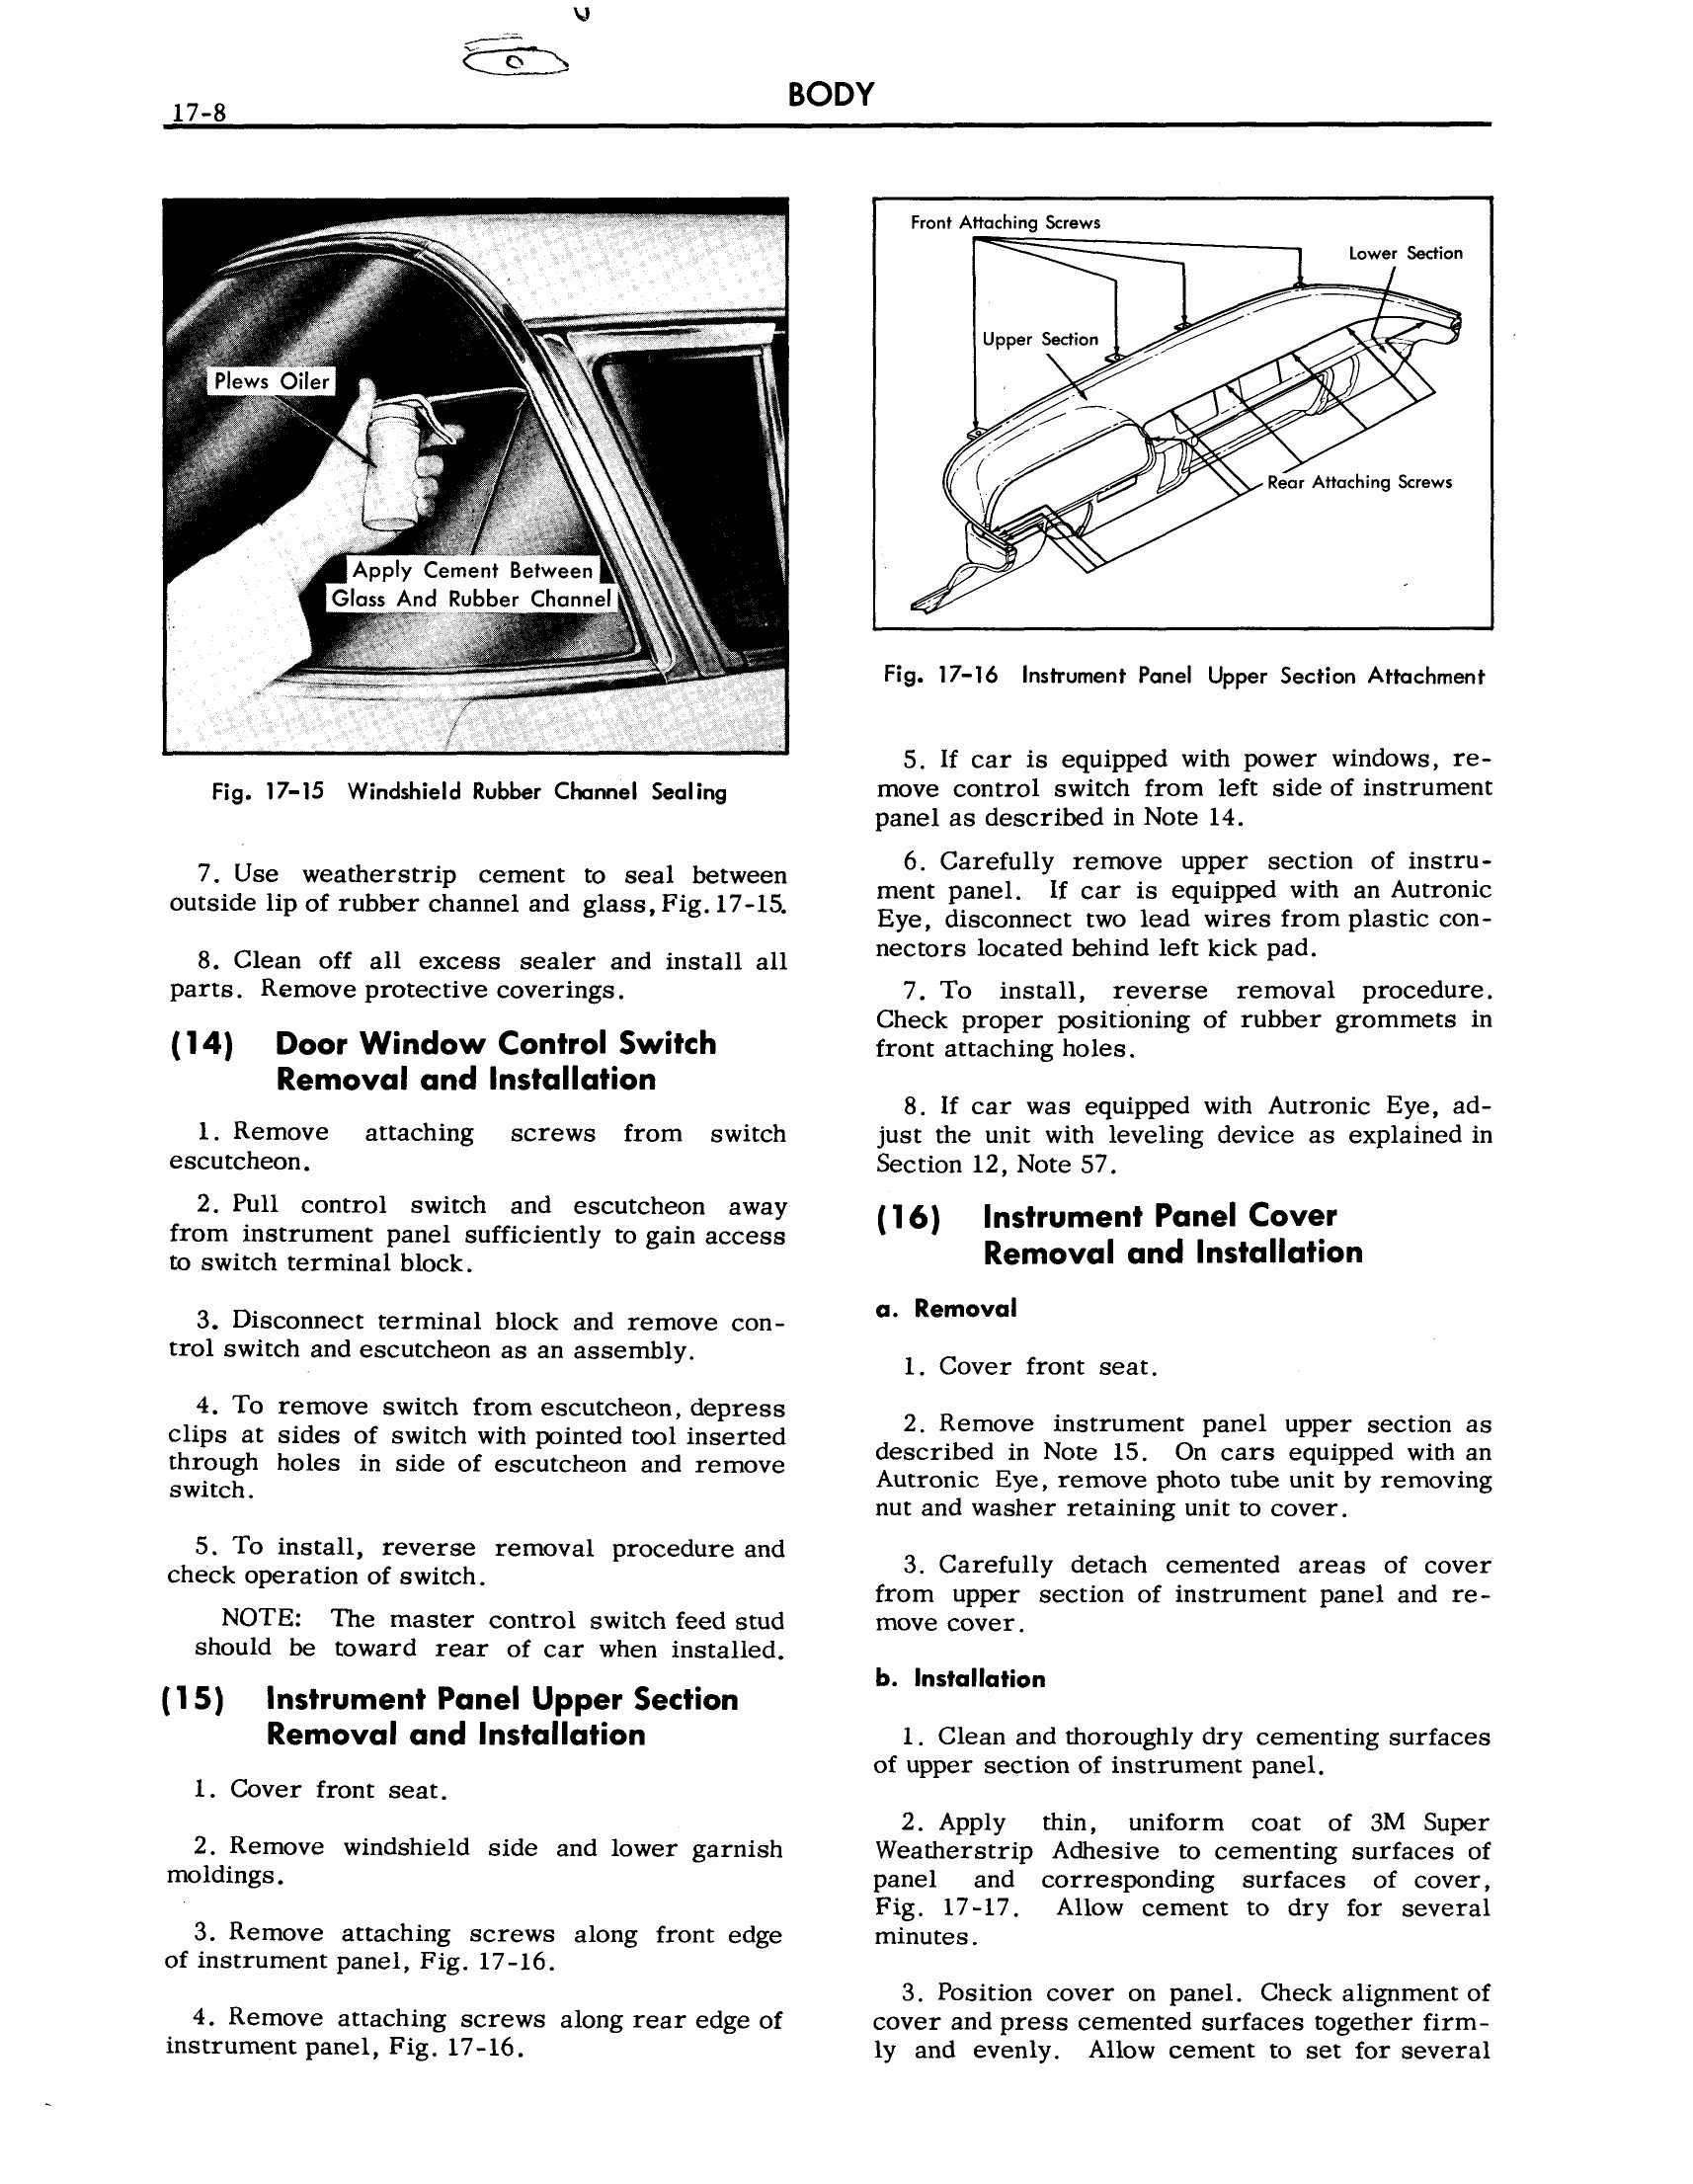 1957 Cadillac Shop Manual- Body Page 8 of 76